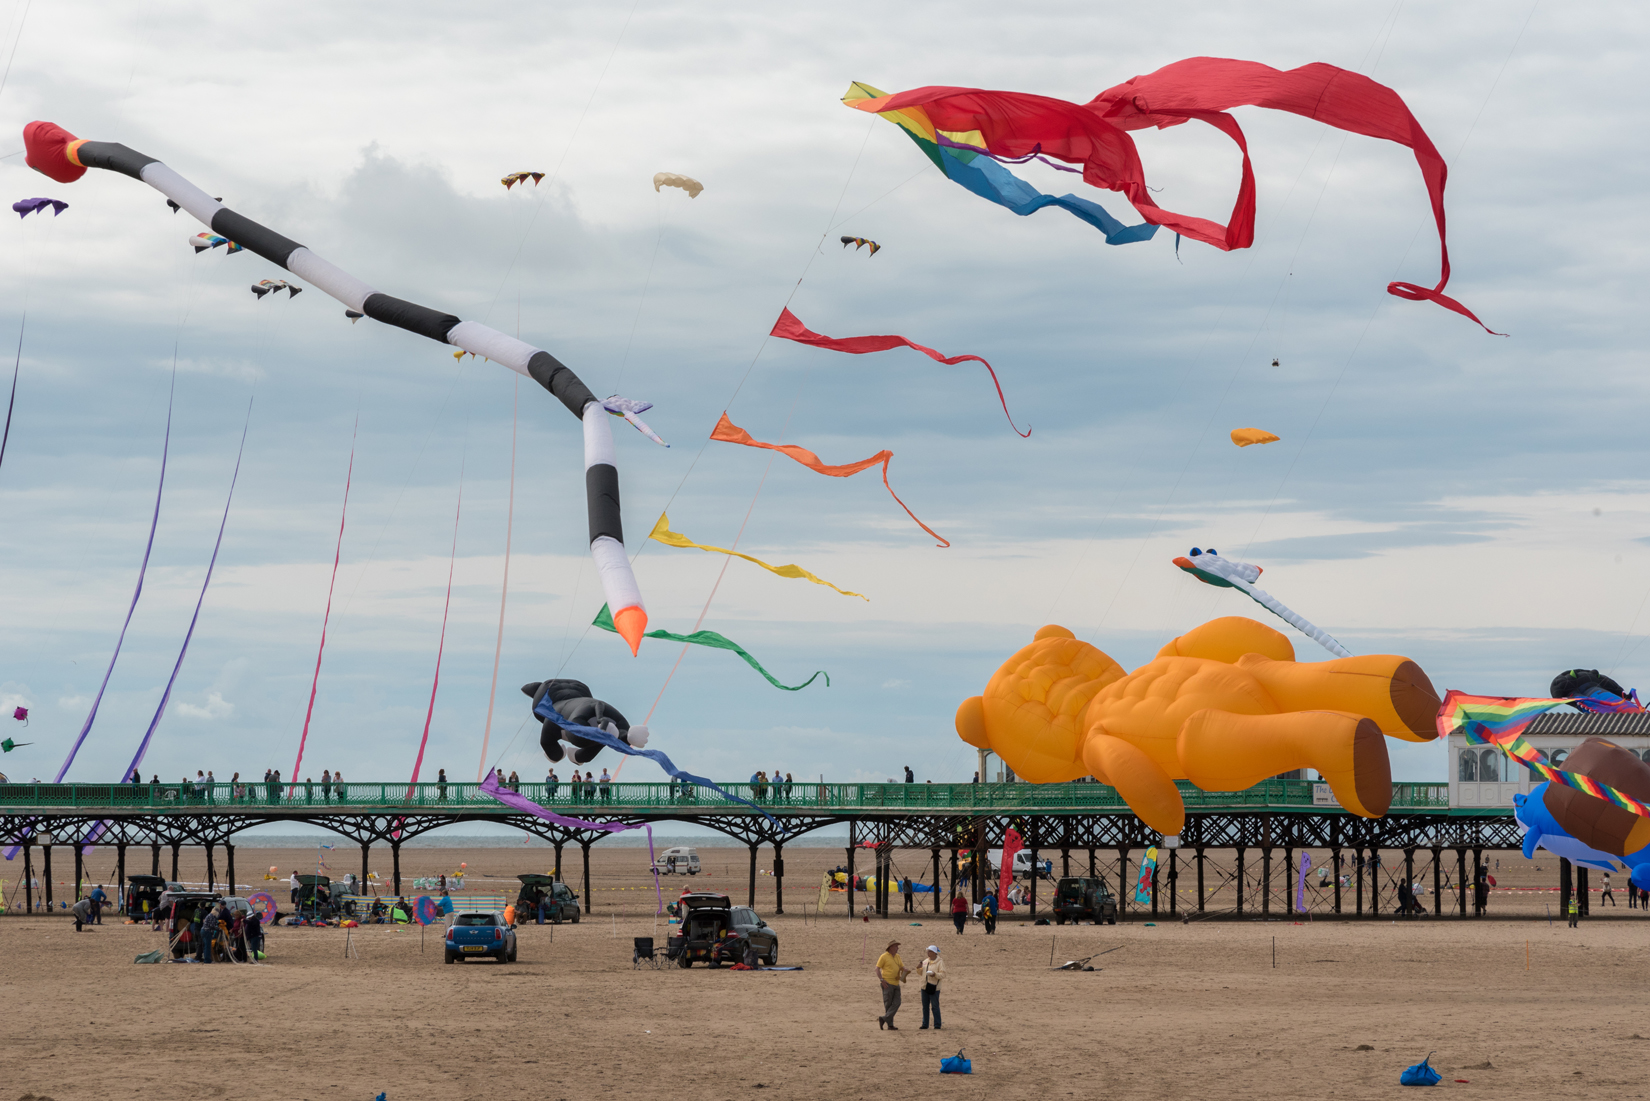 Some of the collection of kites in flight.